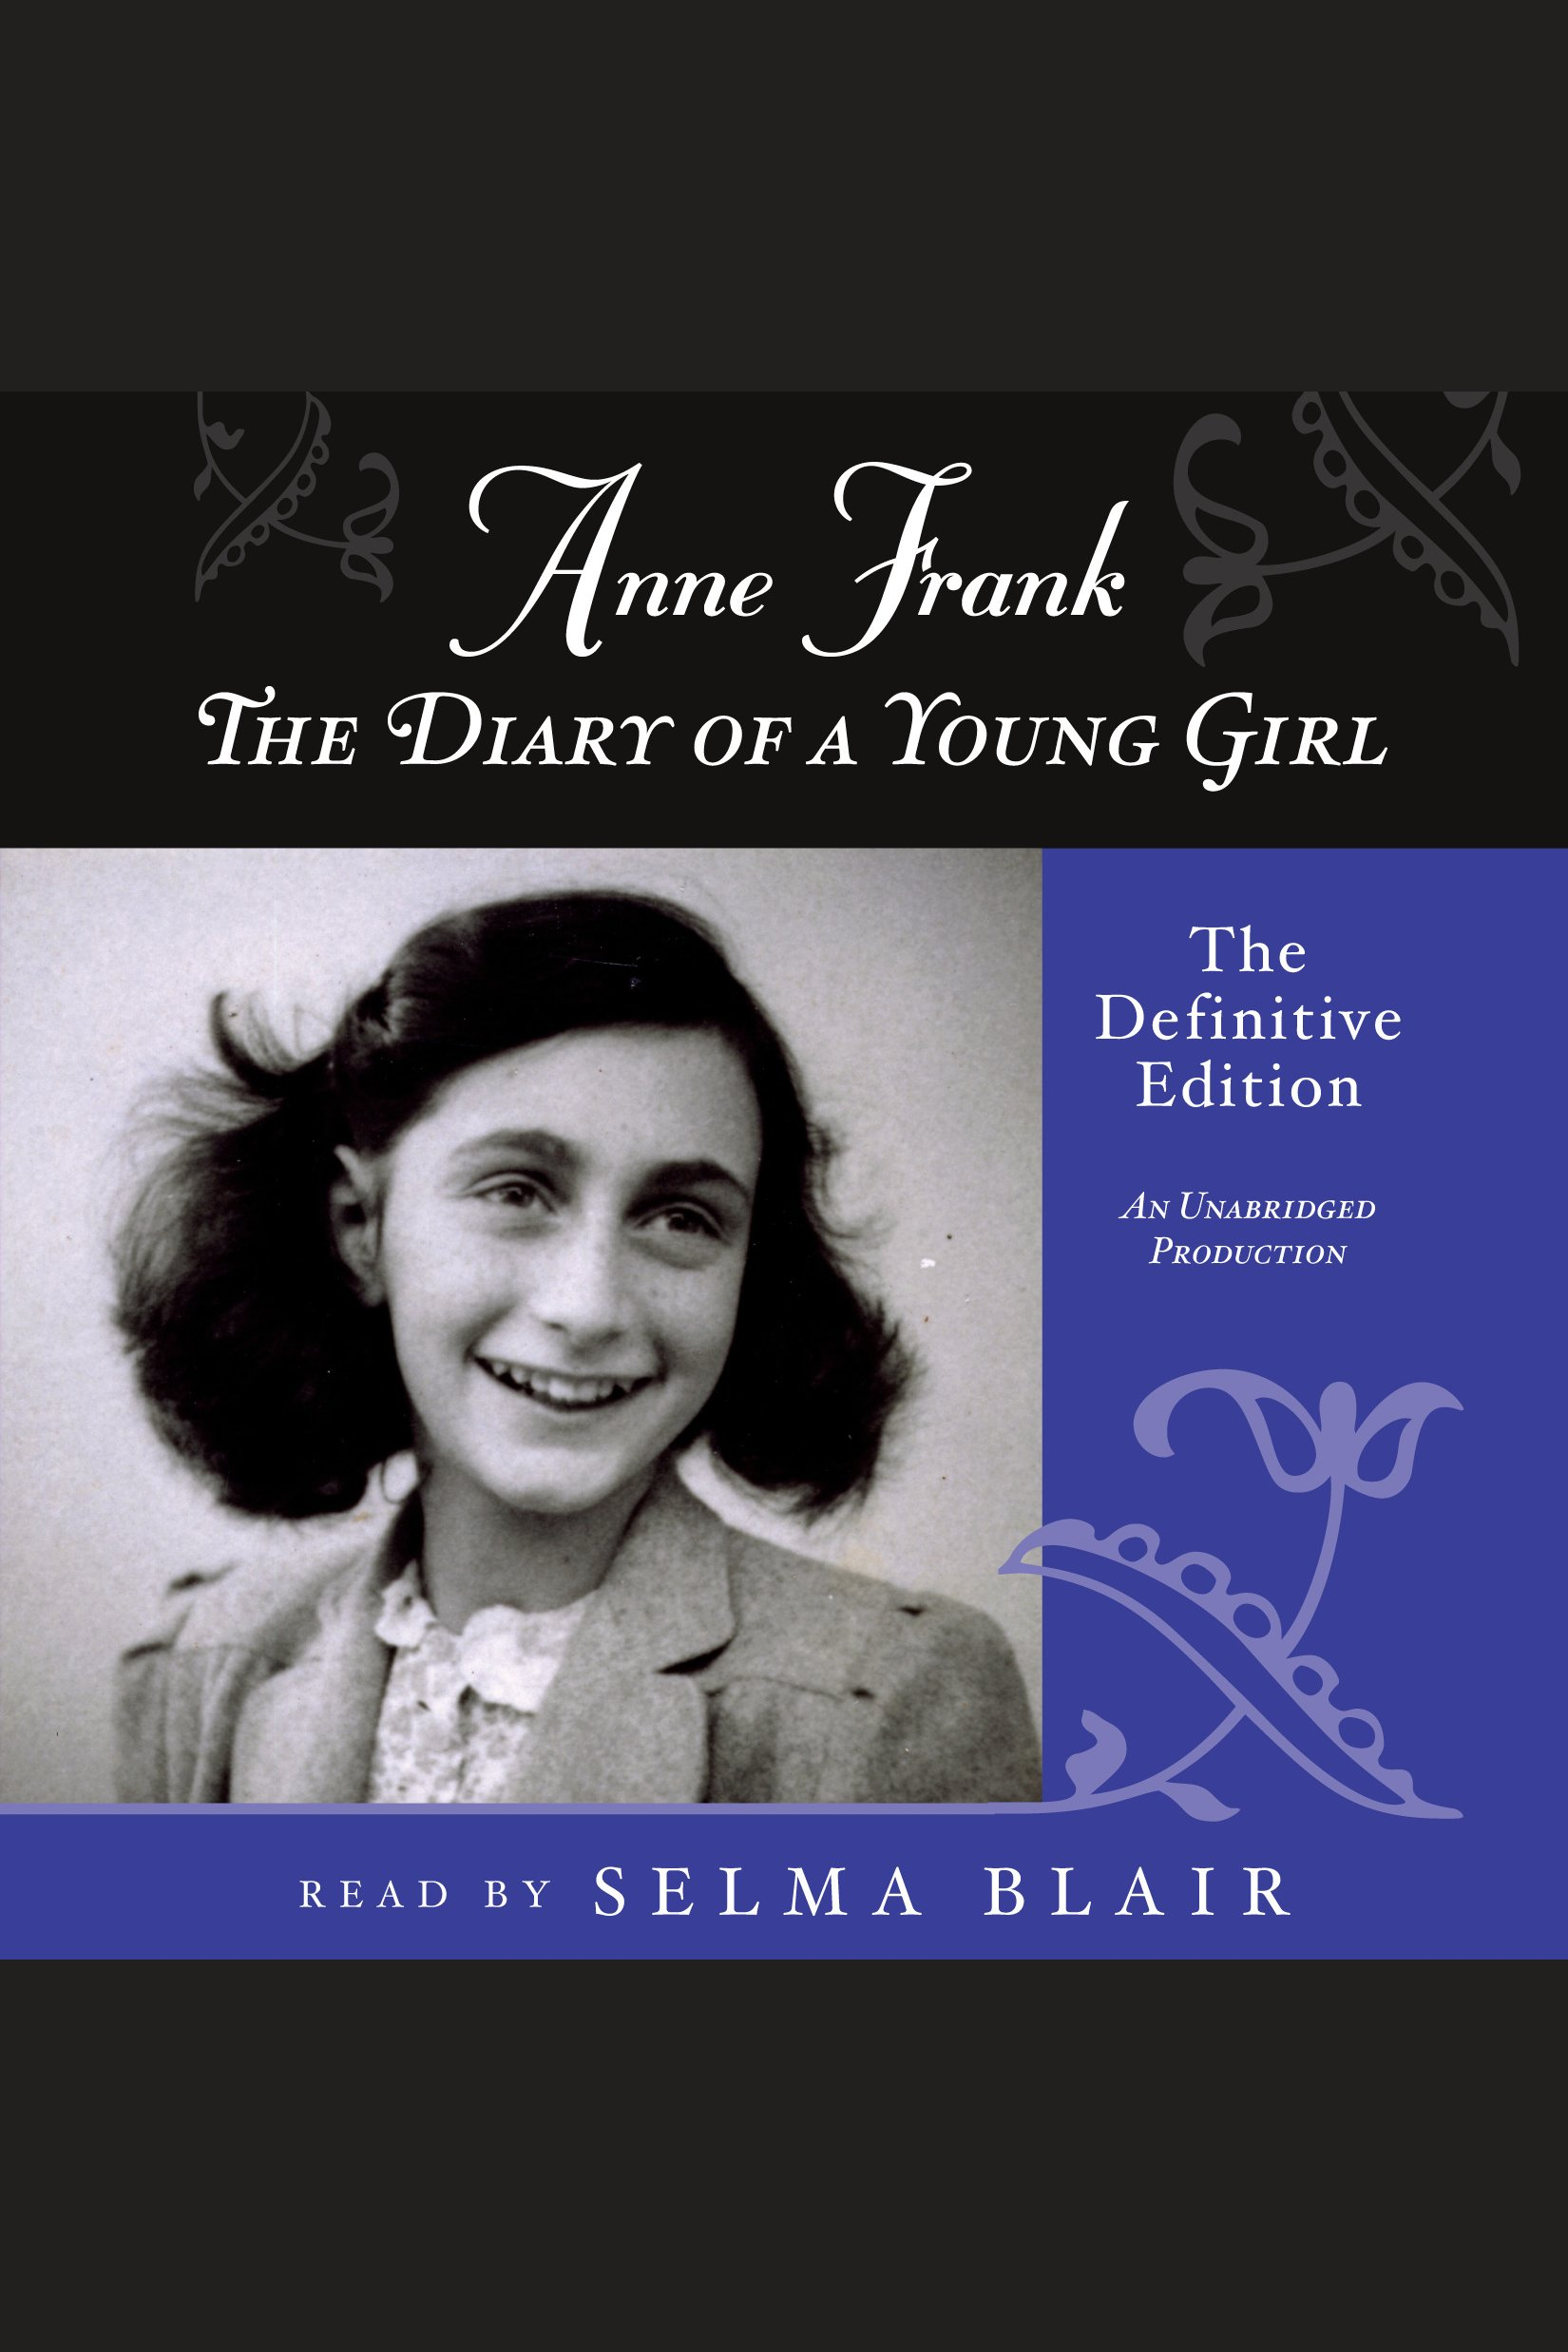 Anne Frank: The Diary of a Young Girl The Definitive Edition